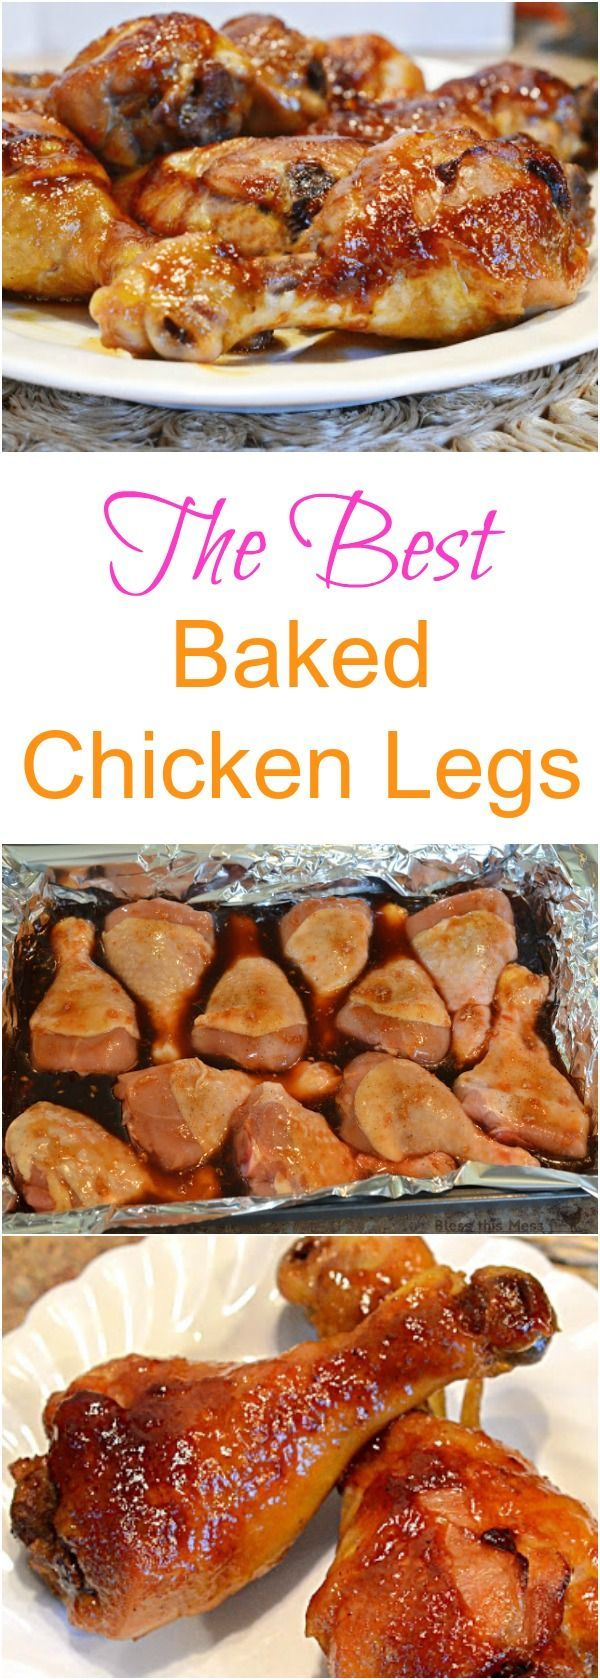 The Best Baked Chicken Legs Recipe Food Pinterest Chicken